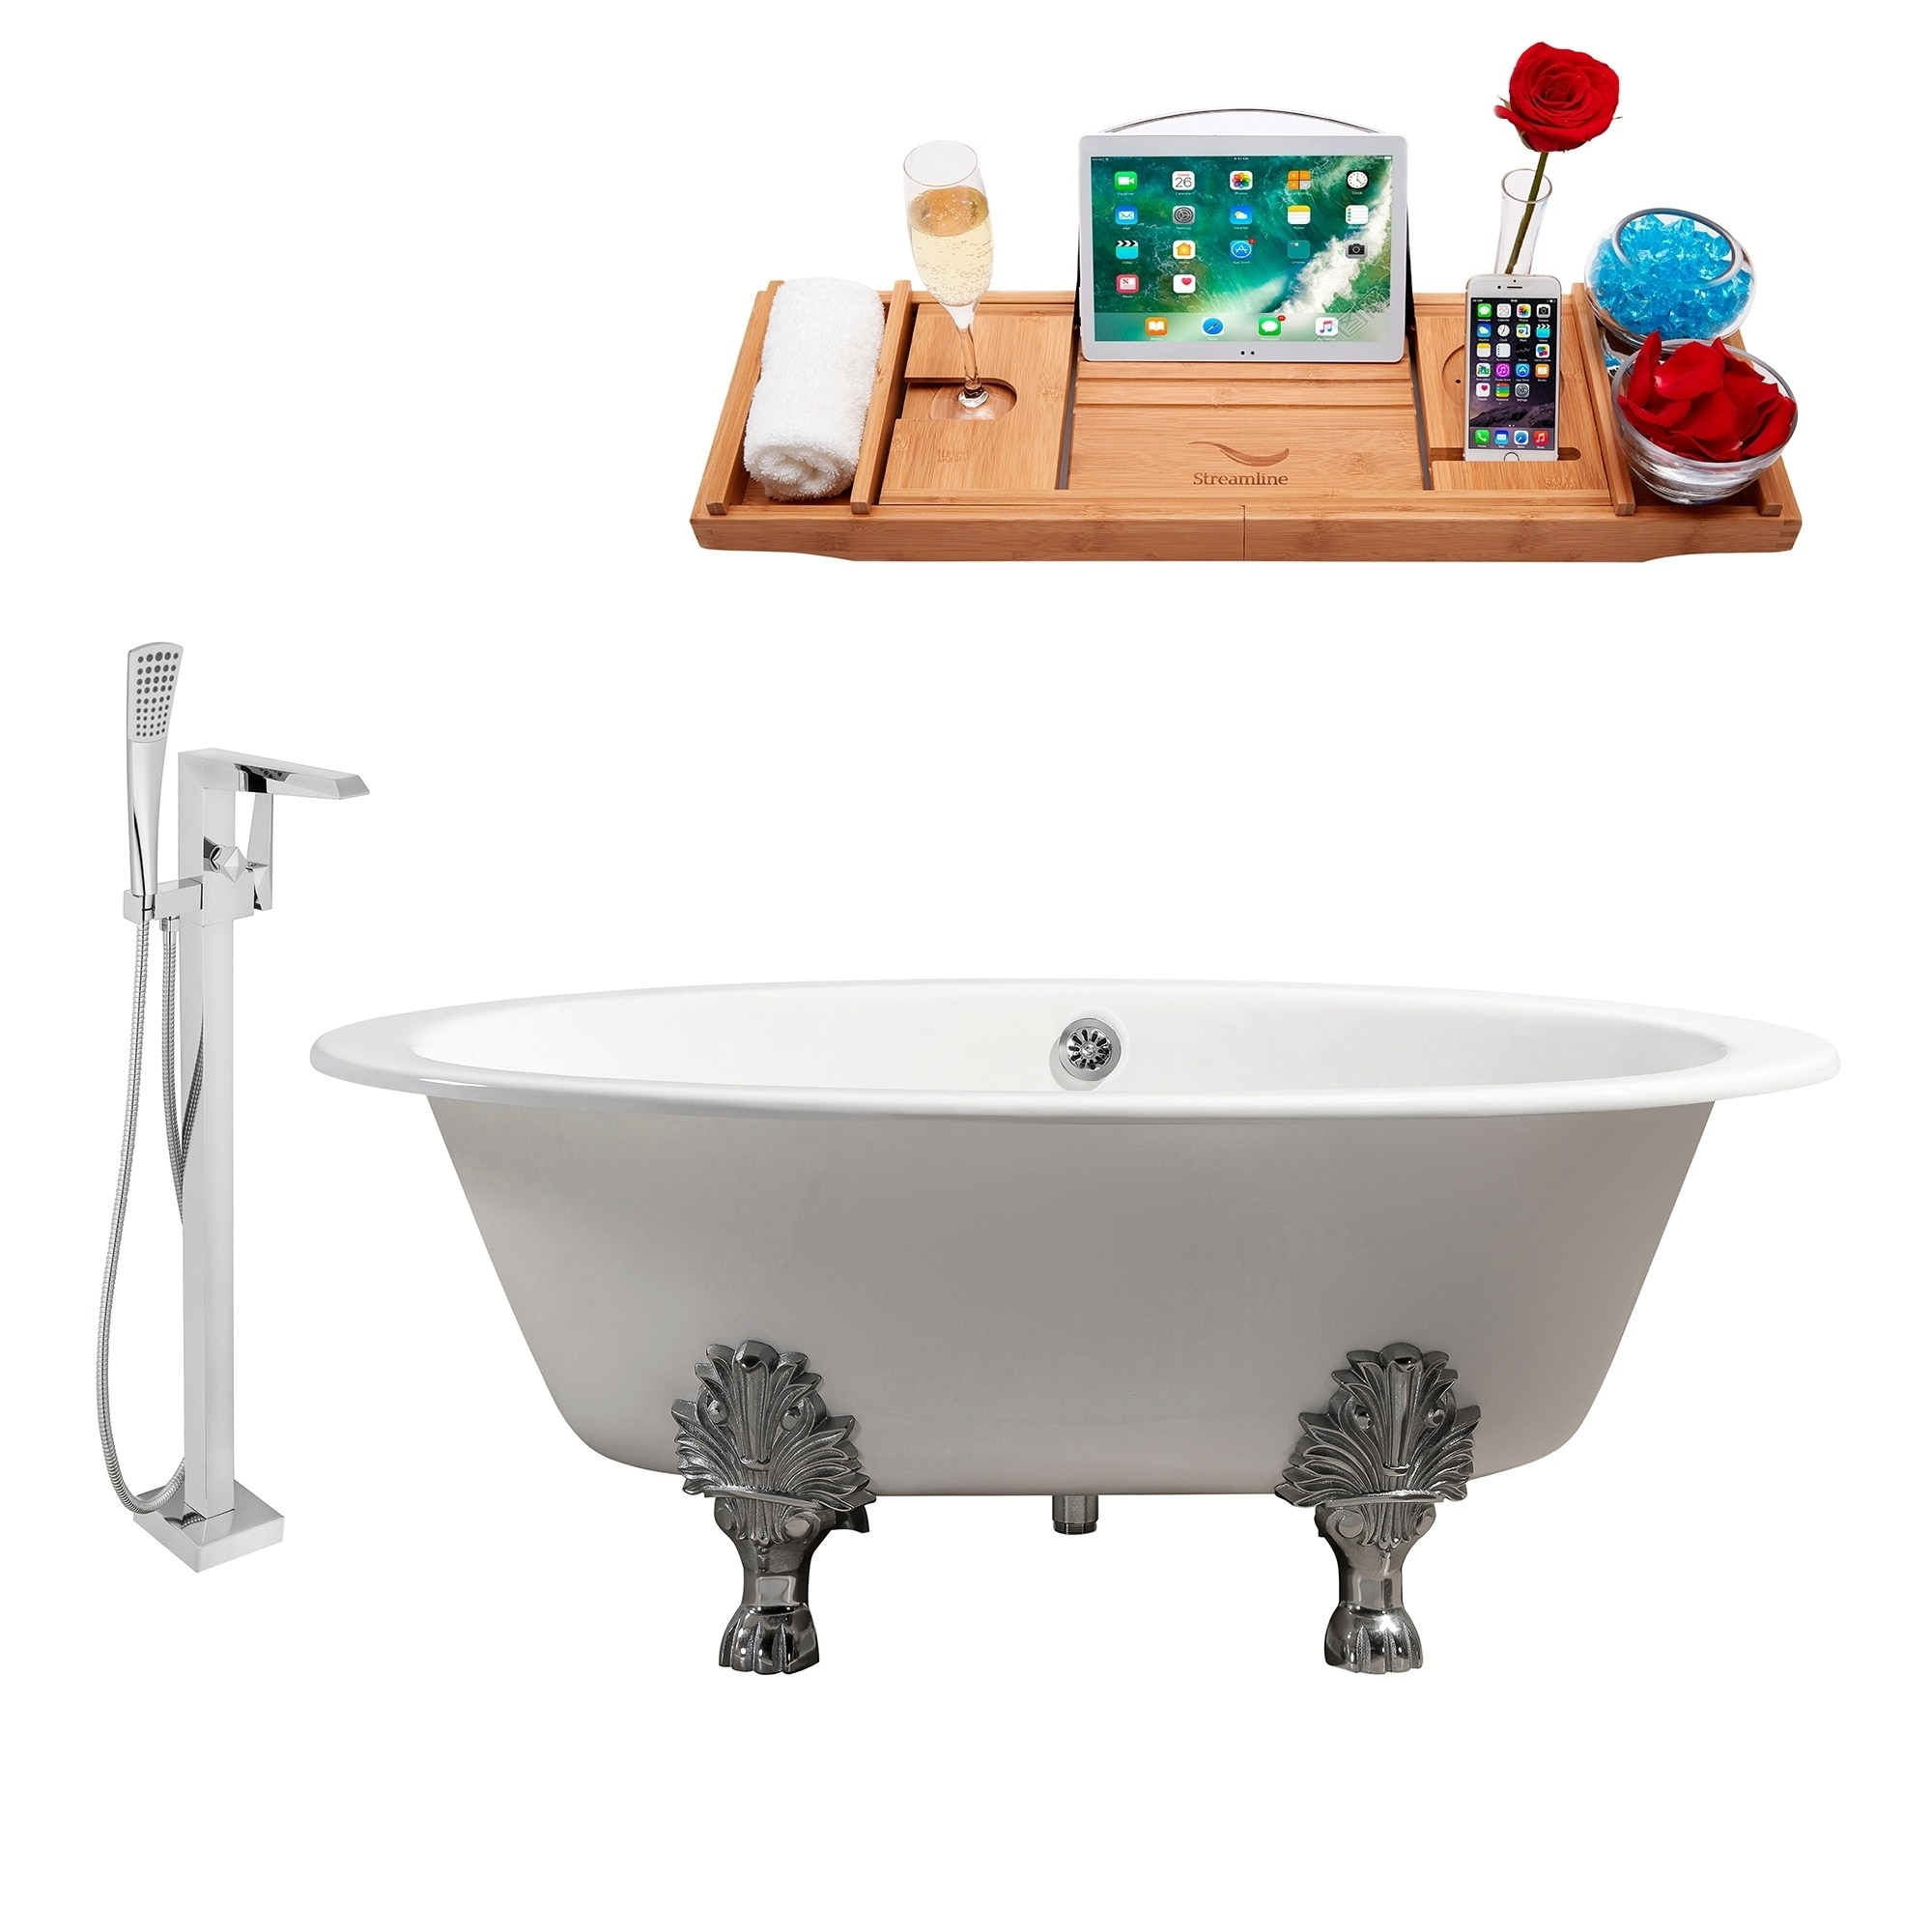 Shop Cast Iron Tub, Faucet and Tray Set 65\